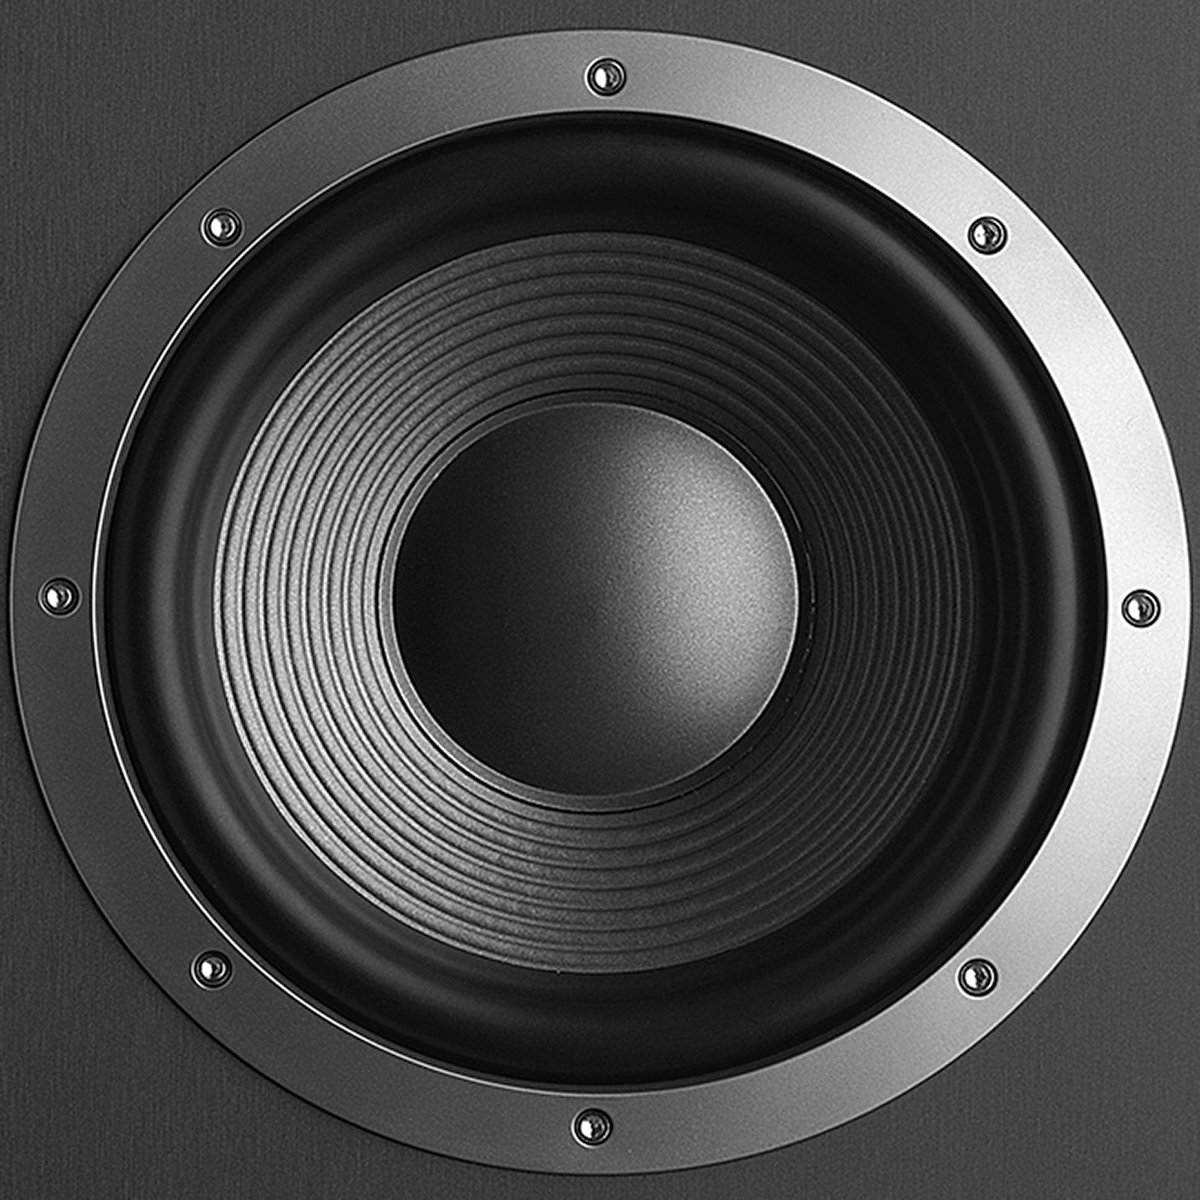 ... RMS and 500 watts of peak power, the subwoofer will knock you out